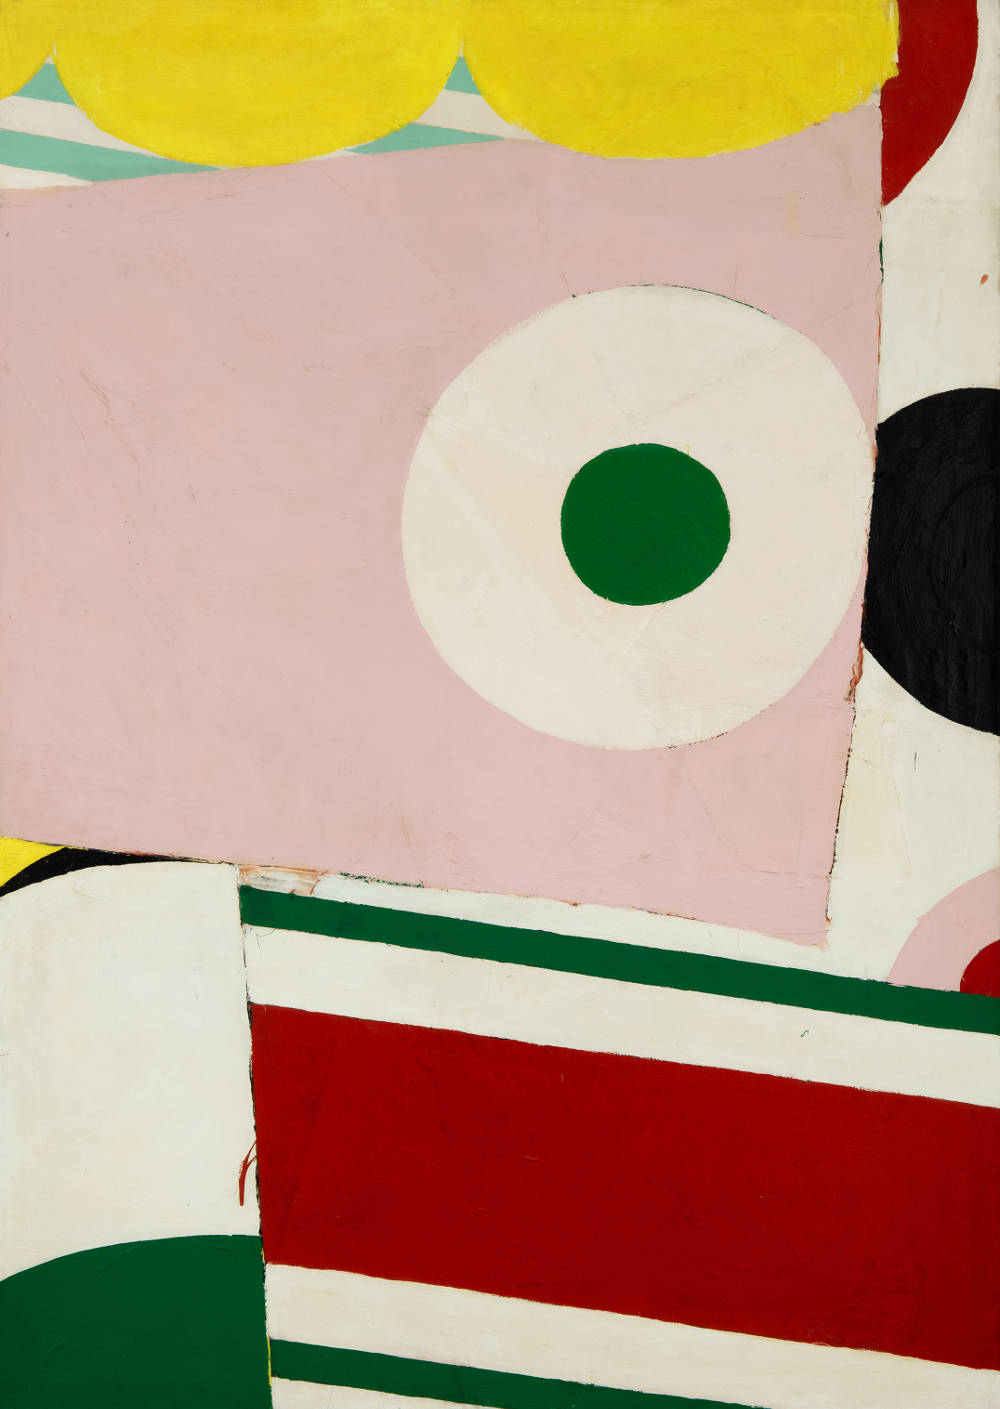 Knox Martin (b. 1923), She (Untitled), 1963–5. Magna acrylic on canvas 100 x 71 inches